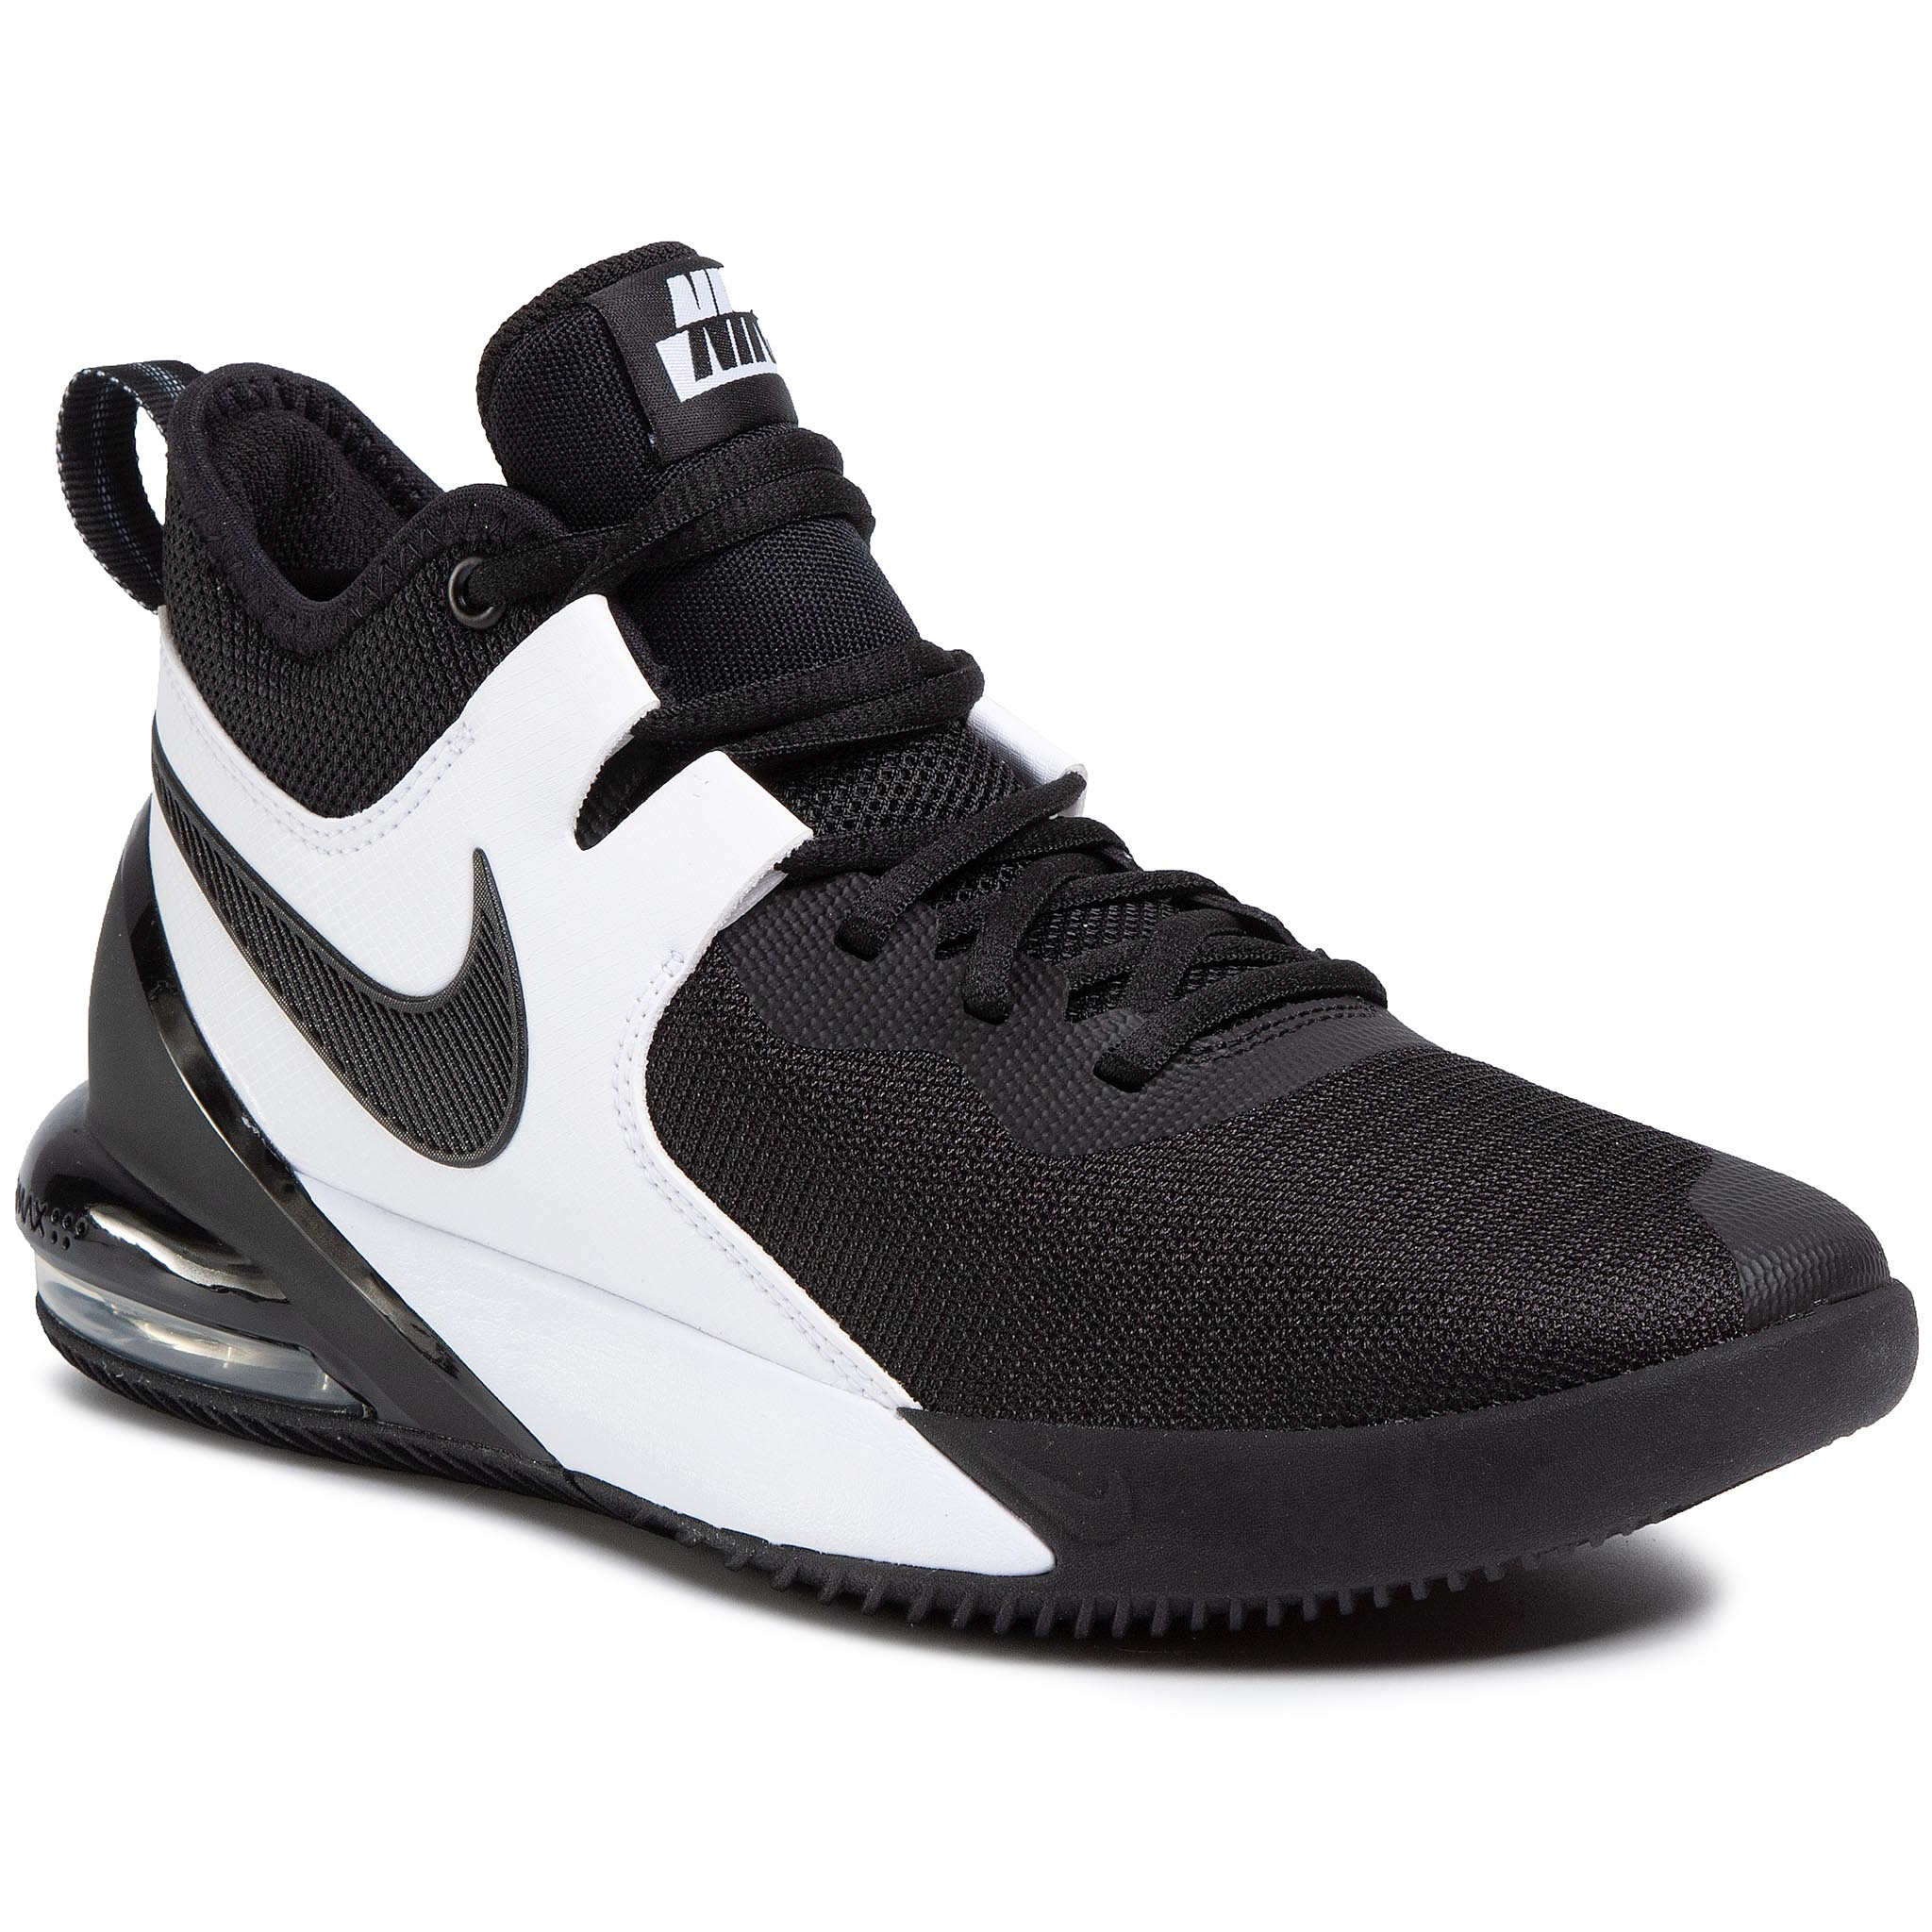 Pantofi Nike - Air Max Impact Ci1396 004 Black/Black/White imagine